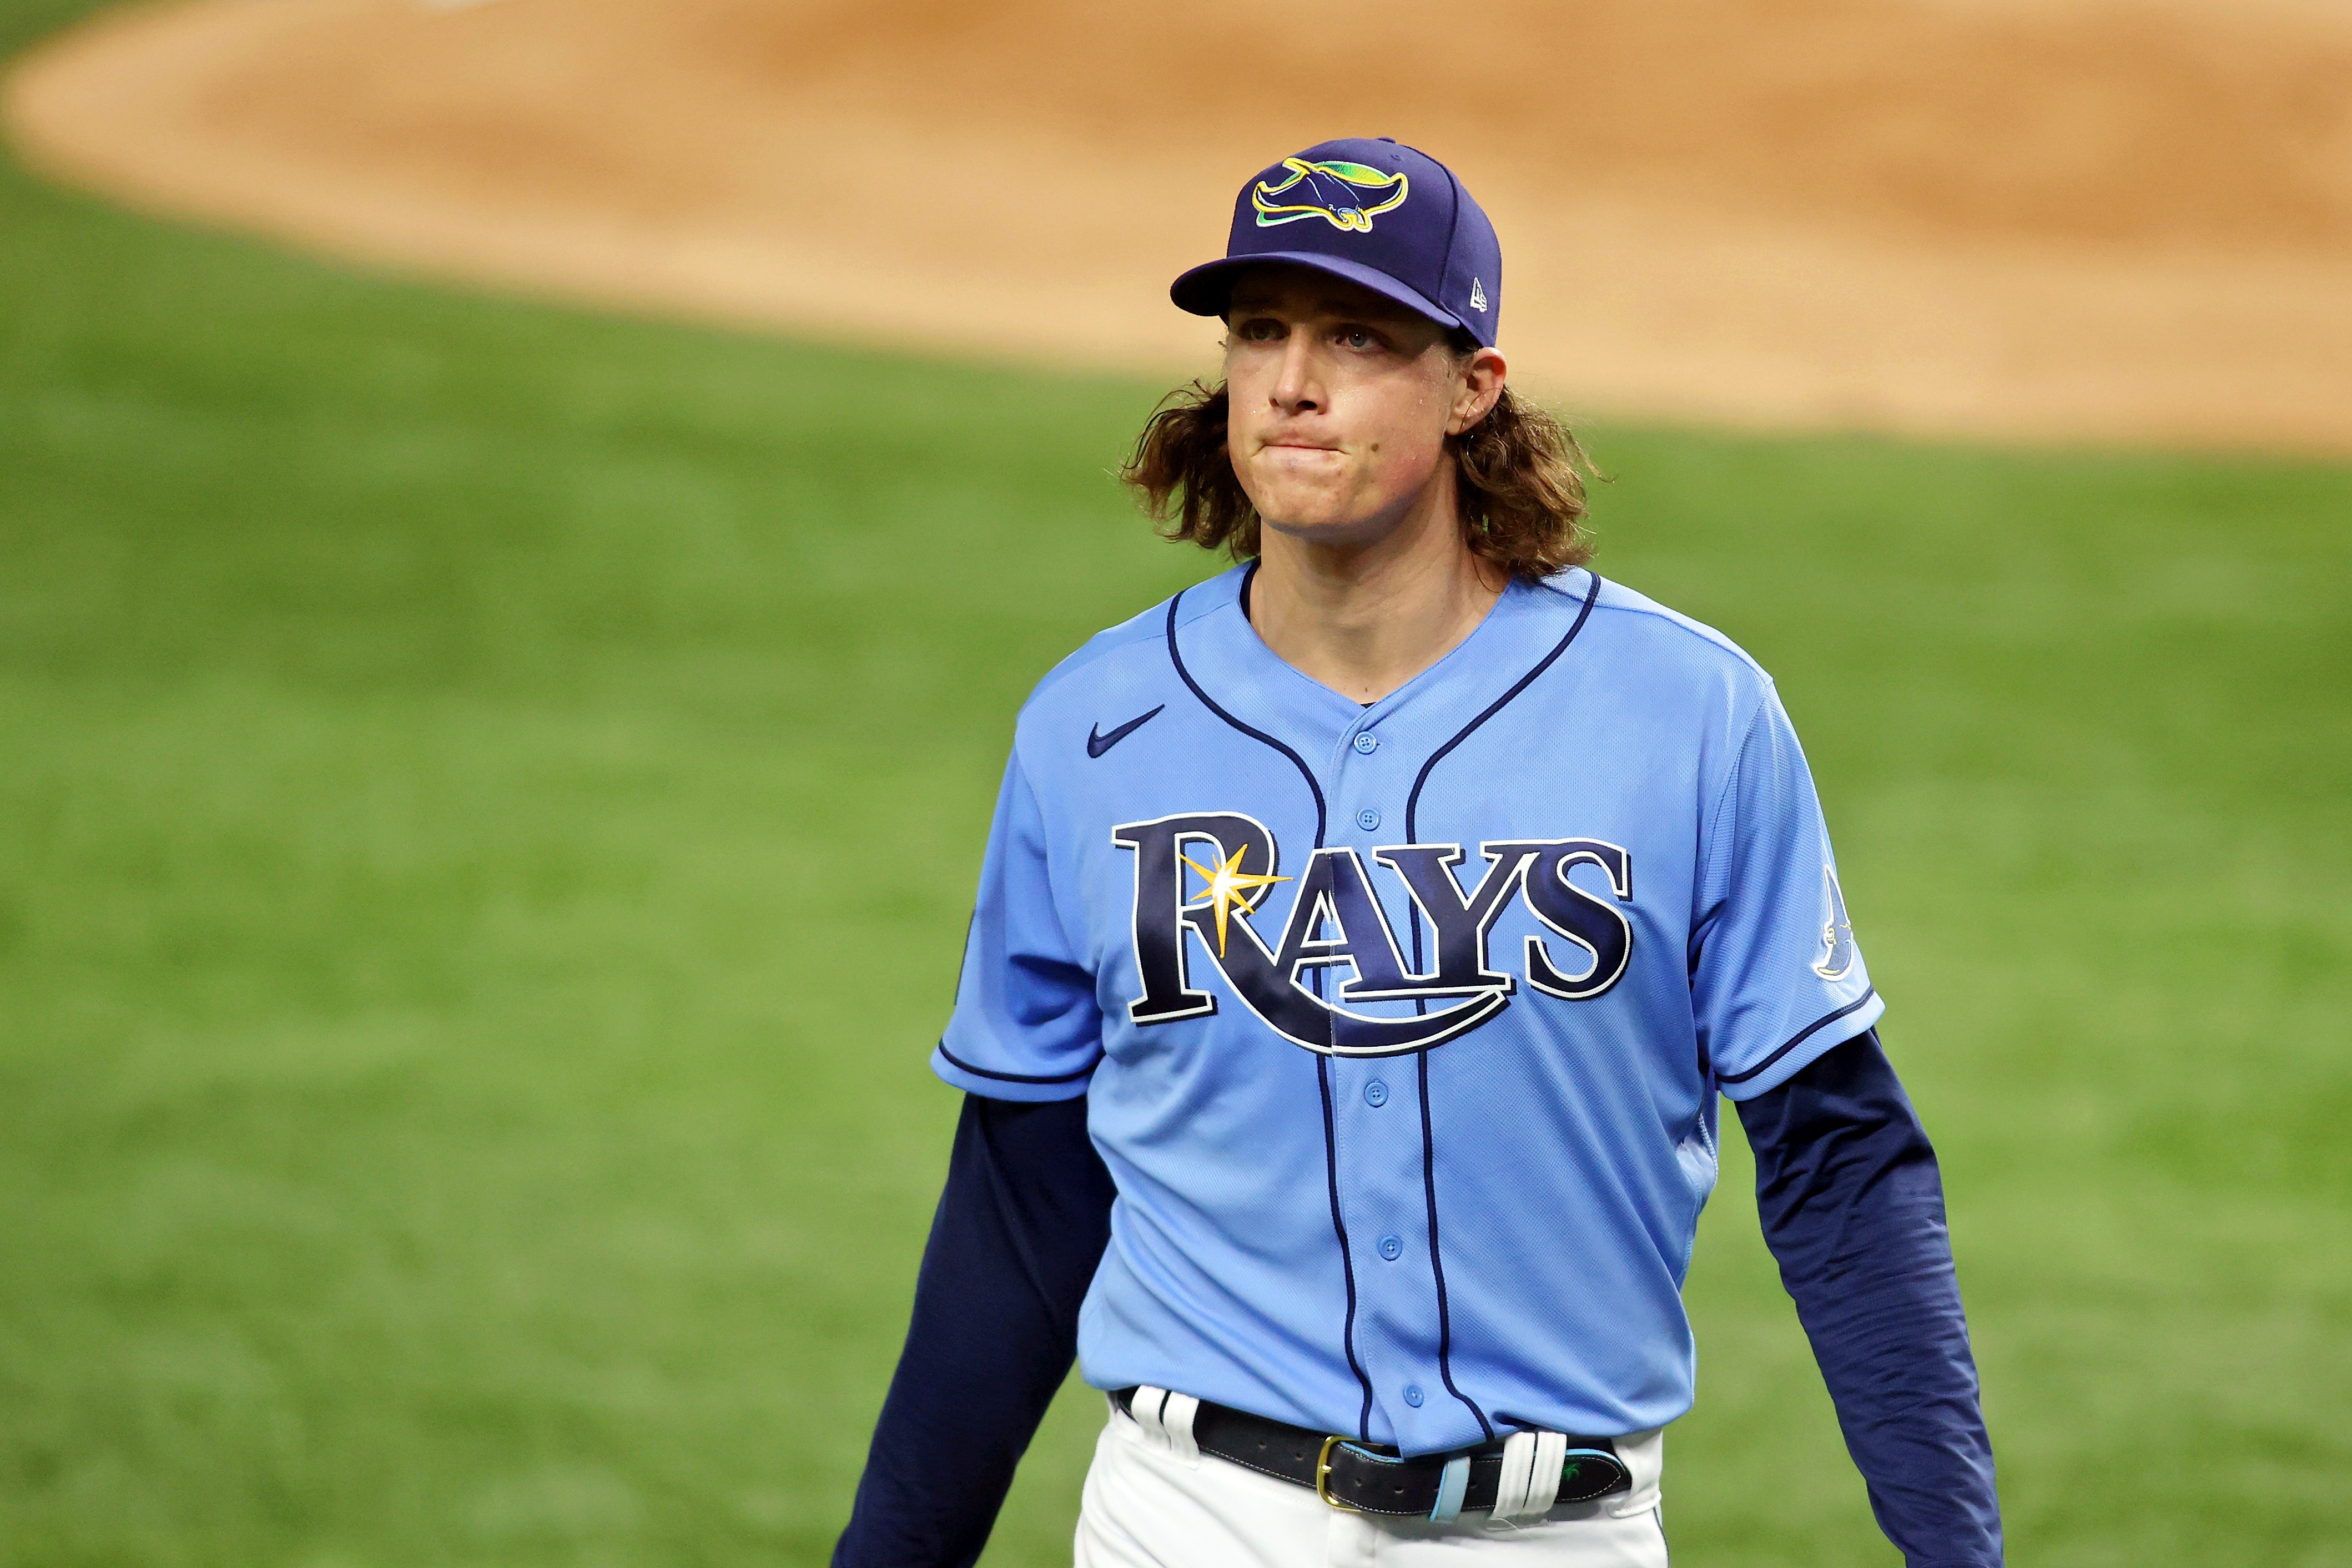 Tampa Bay Rays starting pitcher Tyler Glasnow (20) leaves the field after pitching against the Los Angeles Dodgers during the second inning during game five of the 2020 World Series at Globe Life Field.